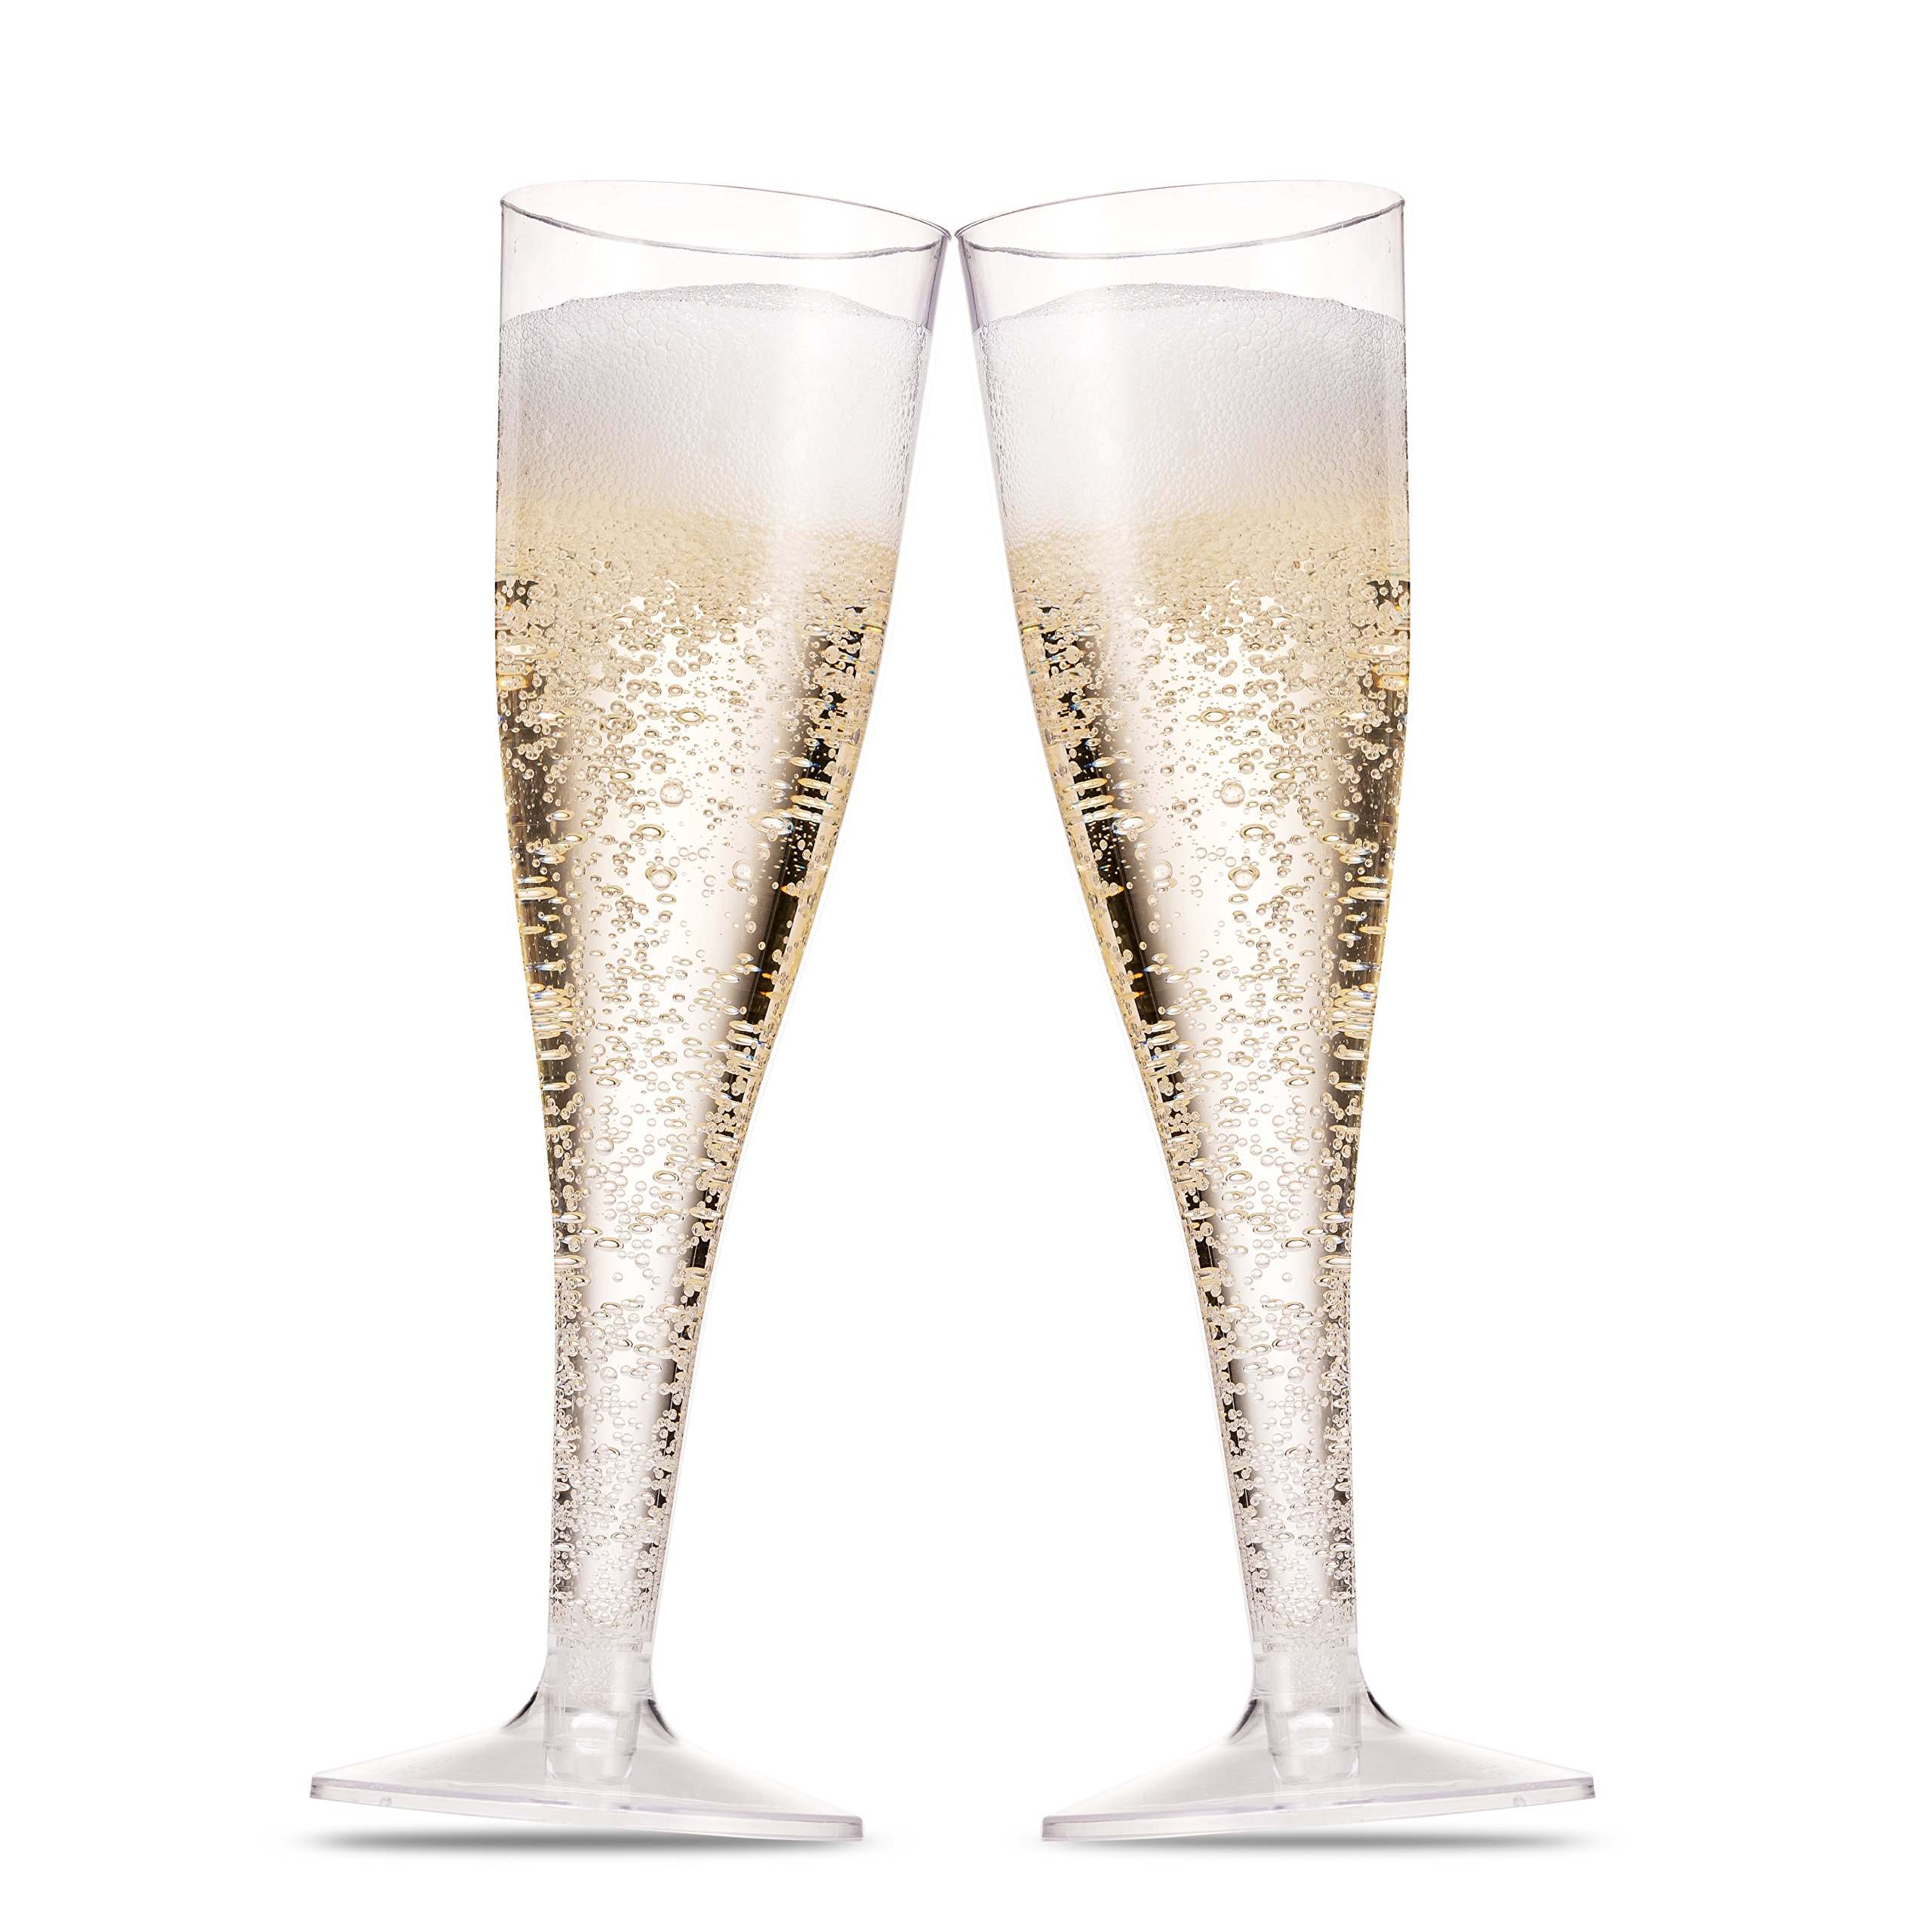 50 Plastic Champagne Flutes 5 Oz Clear Plastic Toasting Glasses Disposable Wedding Party Cocktail Cups by Munfix